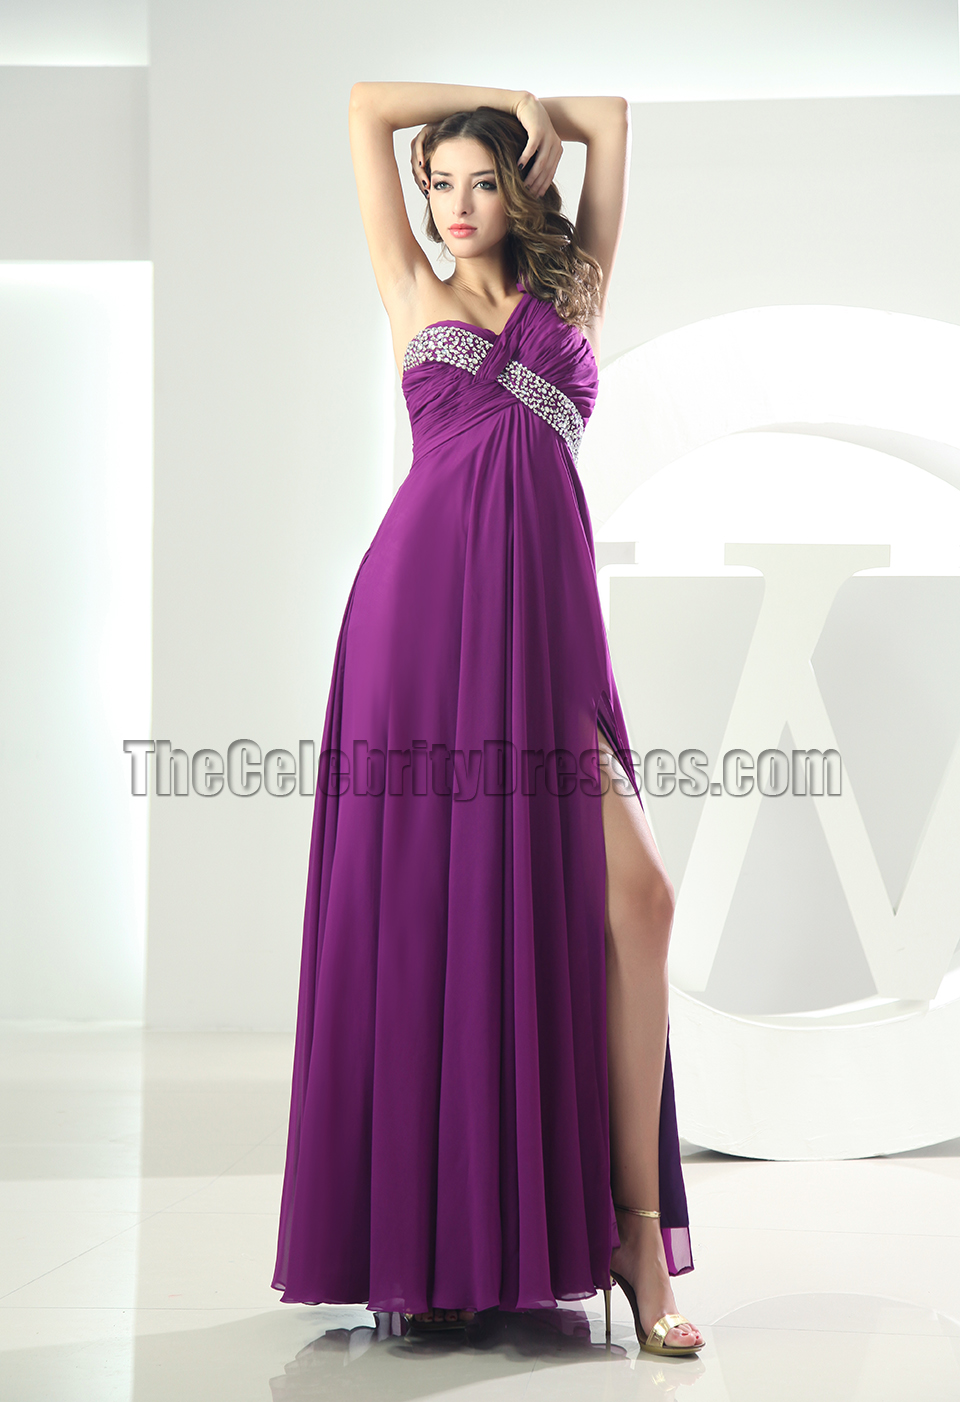 Sexy Backless Purple One Shoulder Prom Gown Evening Dress ...